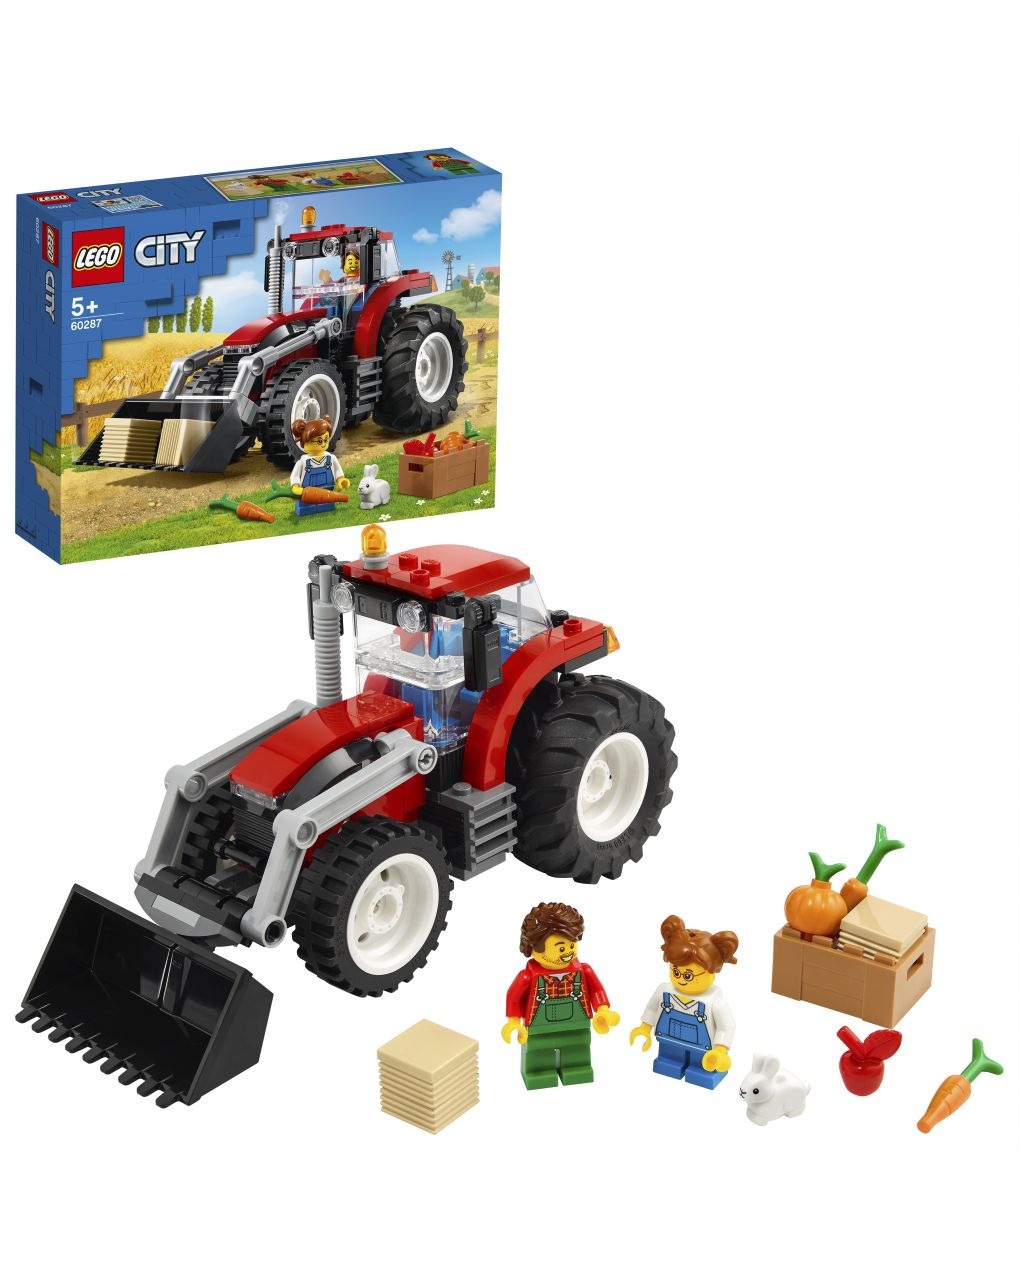 Lego city great vehicles - trattore - 60287 - LEGO